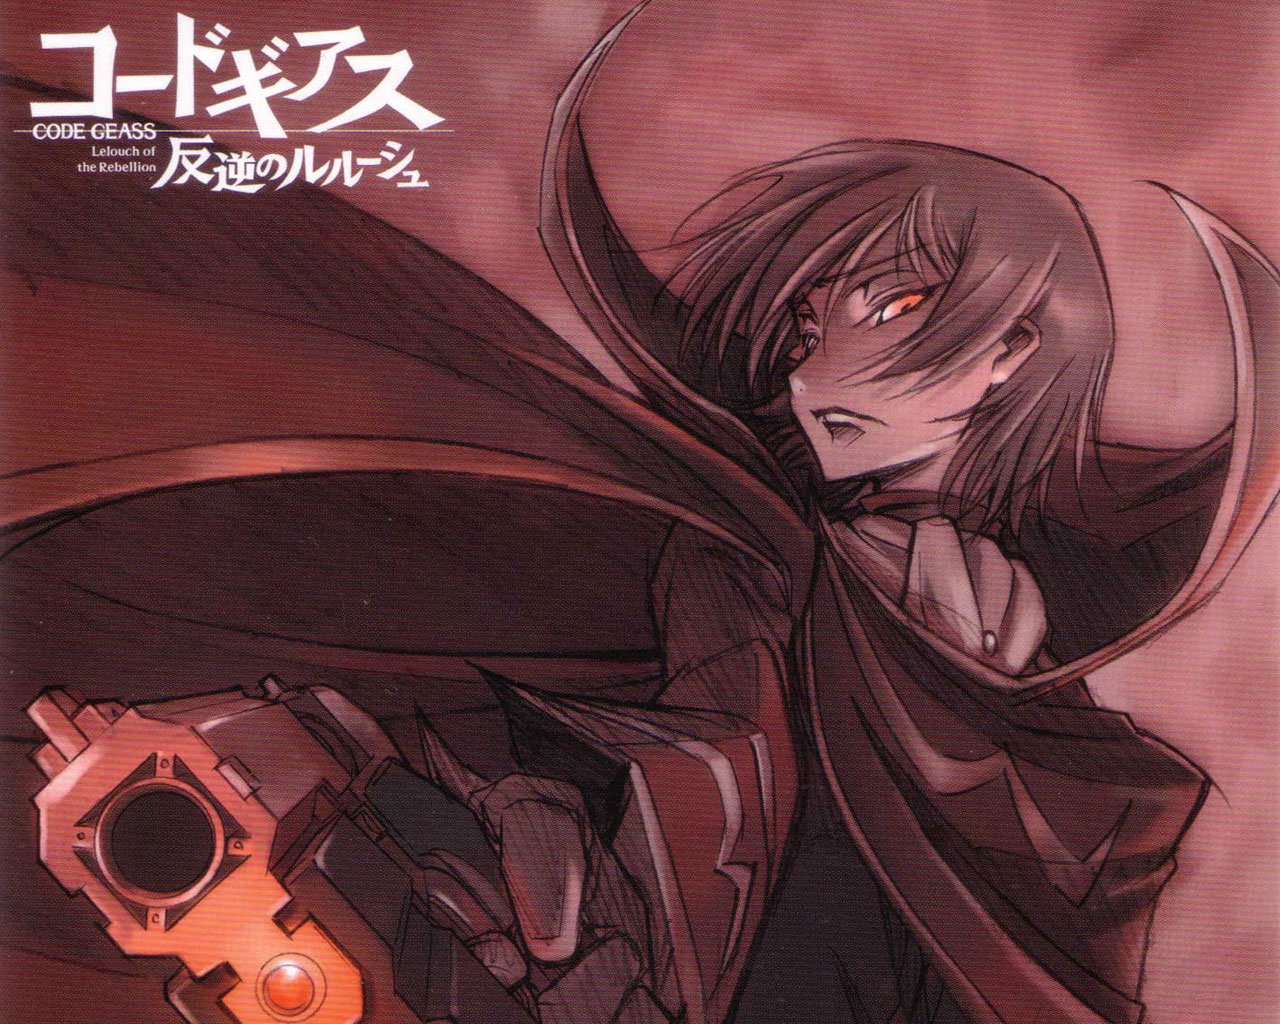 Download hd 1280x1024 Lelouch Lamperouge PC wallpaper ID:43709 for free